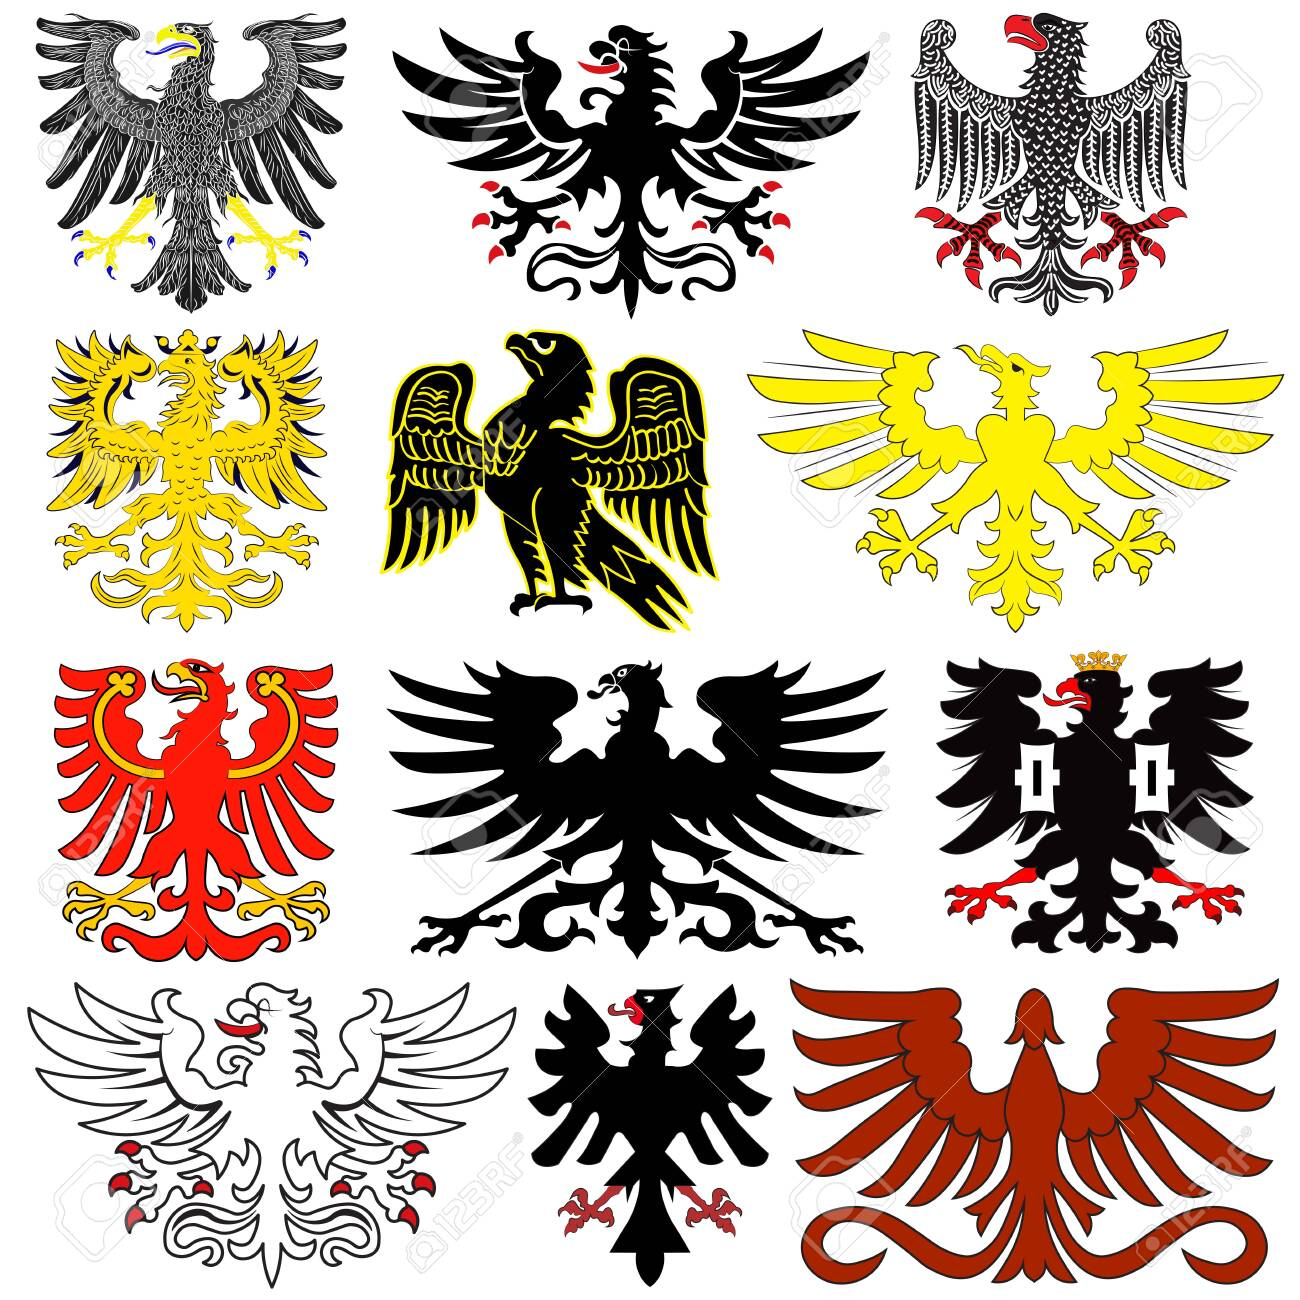 Nytorian Empire Coatsoarms - Double Headed Eagle Drawing Clipart (#4170934)  - PinClipart